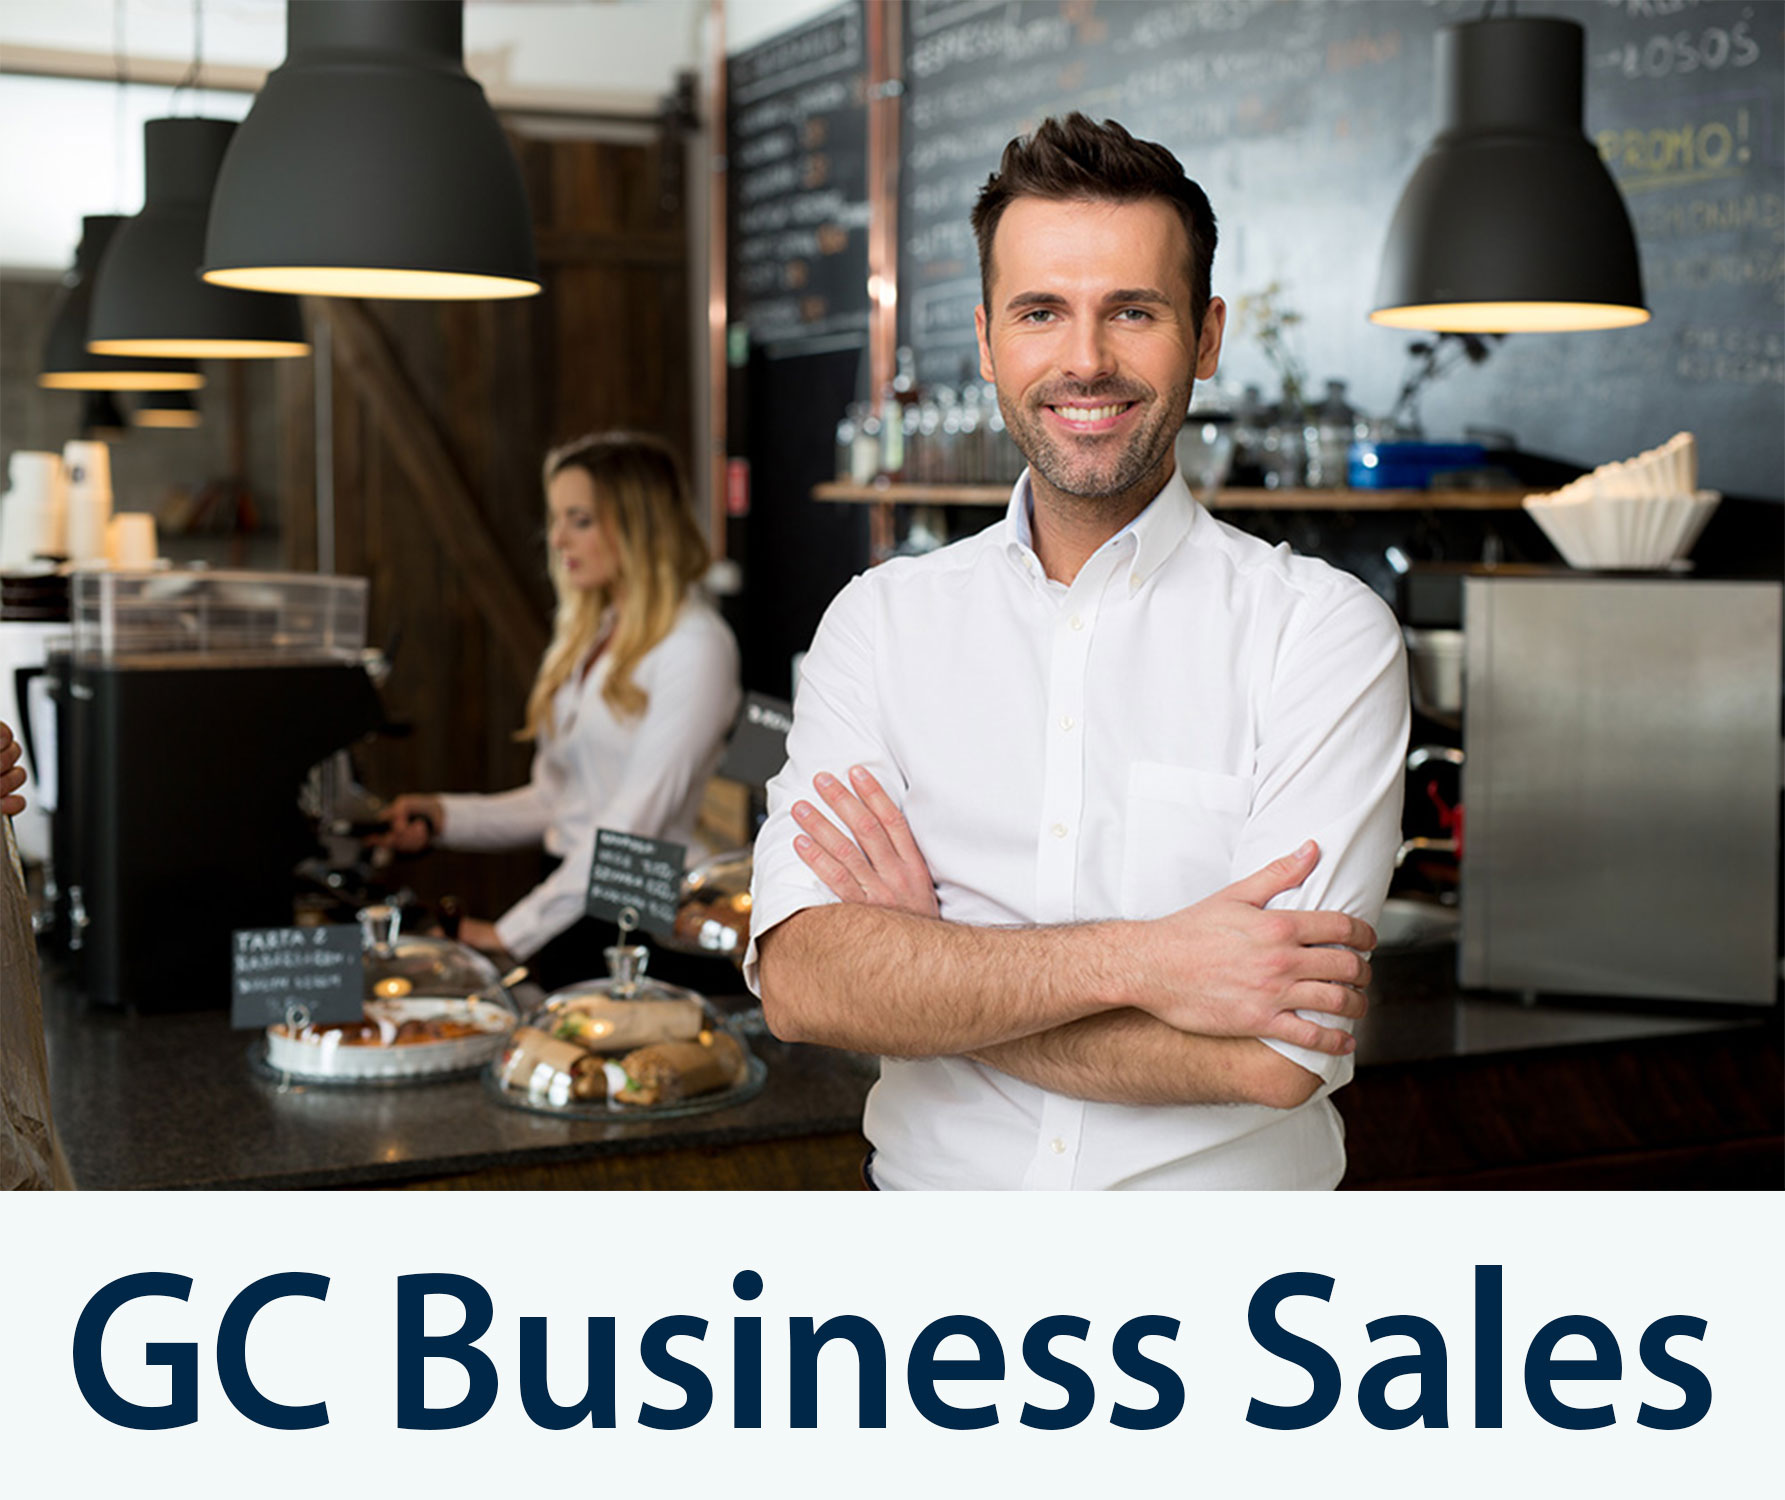 GC-business-sales-009